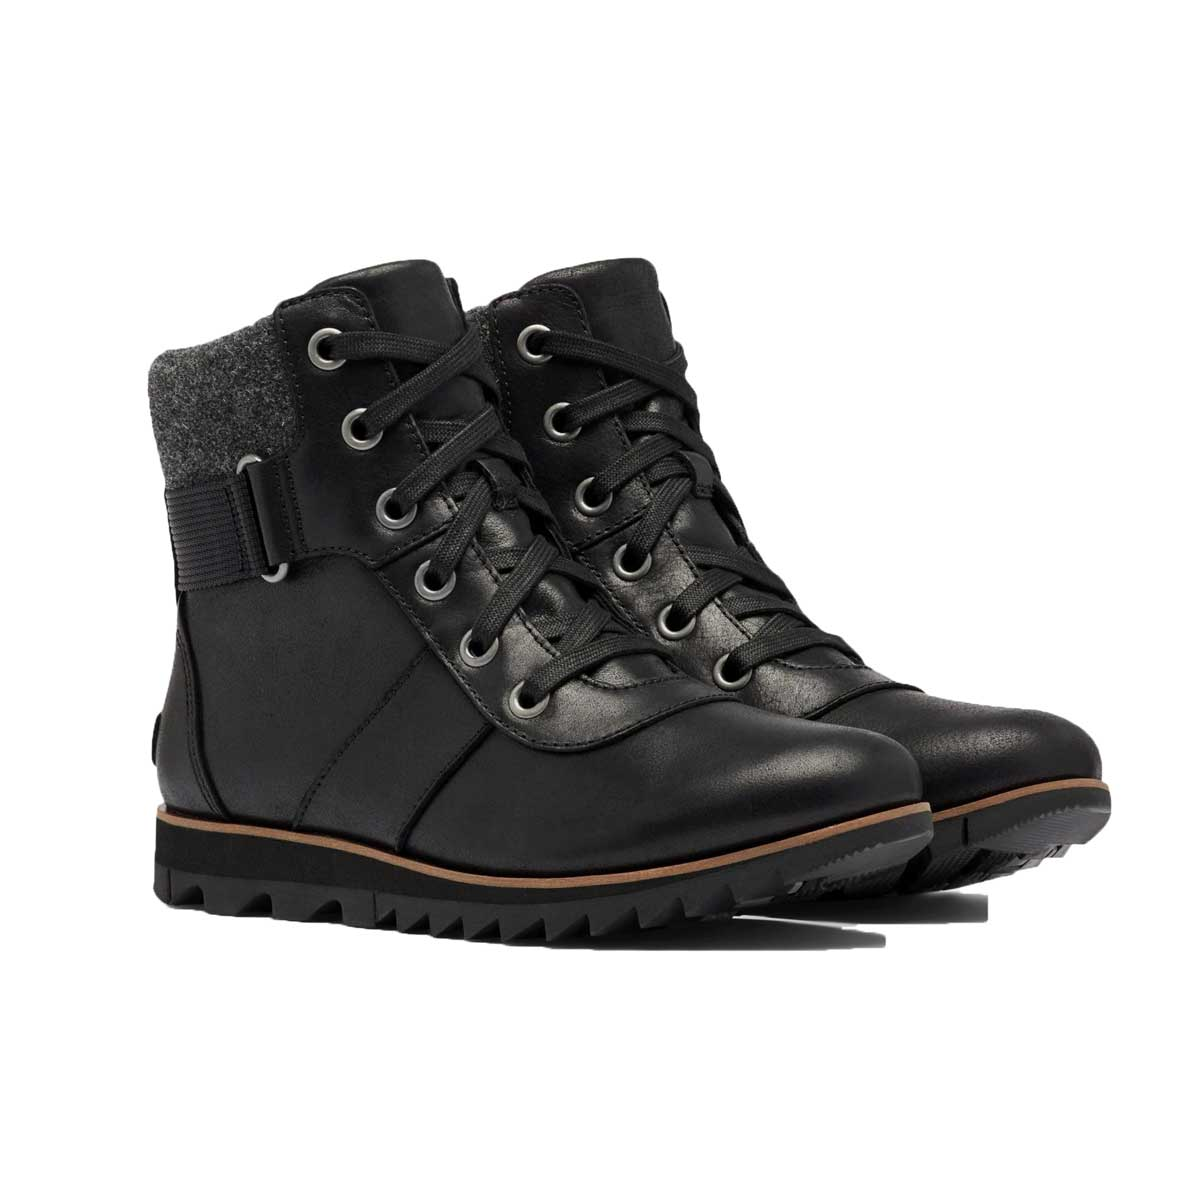 Sorel Women's Harlow Conquest Boot in Black